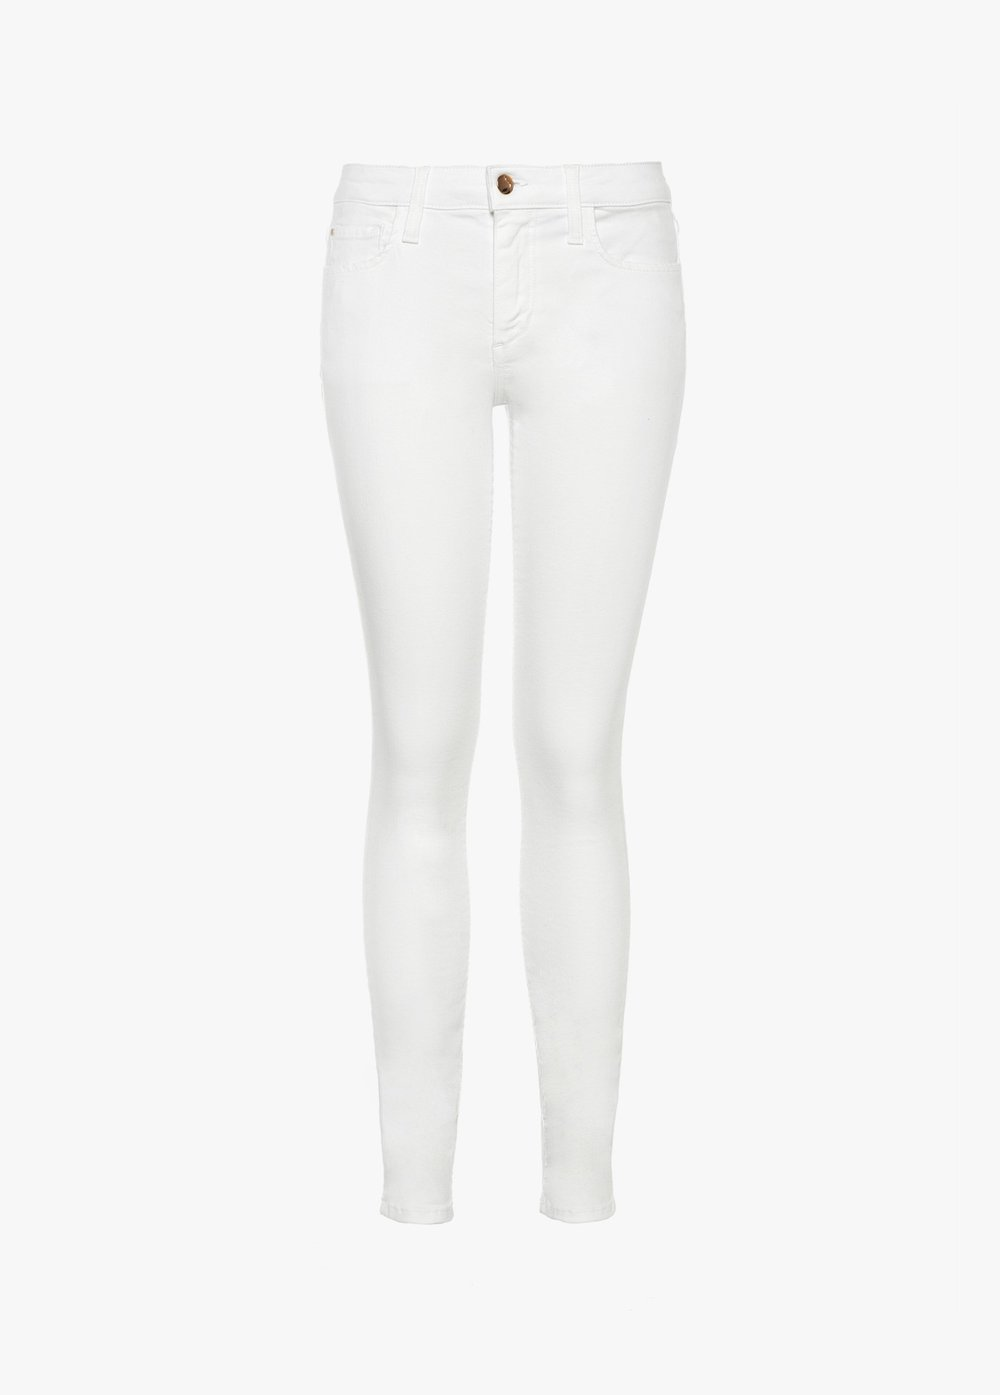 THE ICON MID RISE SKINNY ANKLE // HENNIE // FLAWLESS by Joe's Jeans